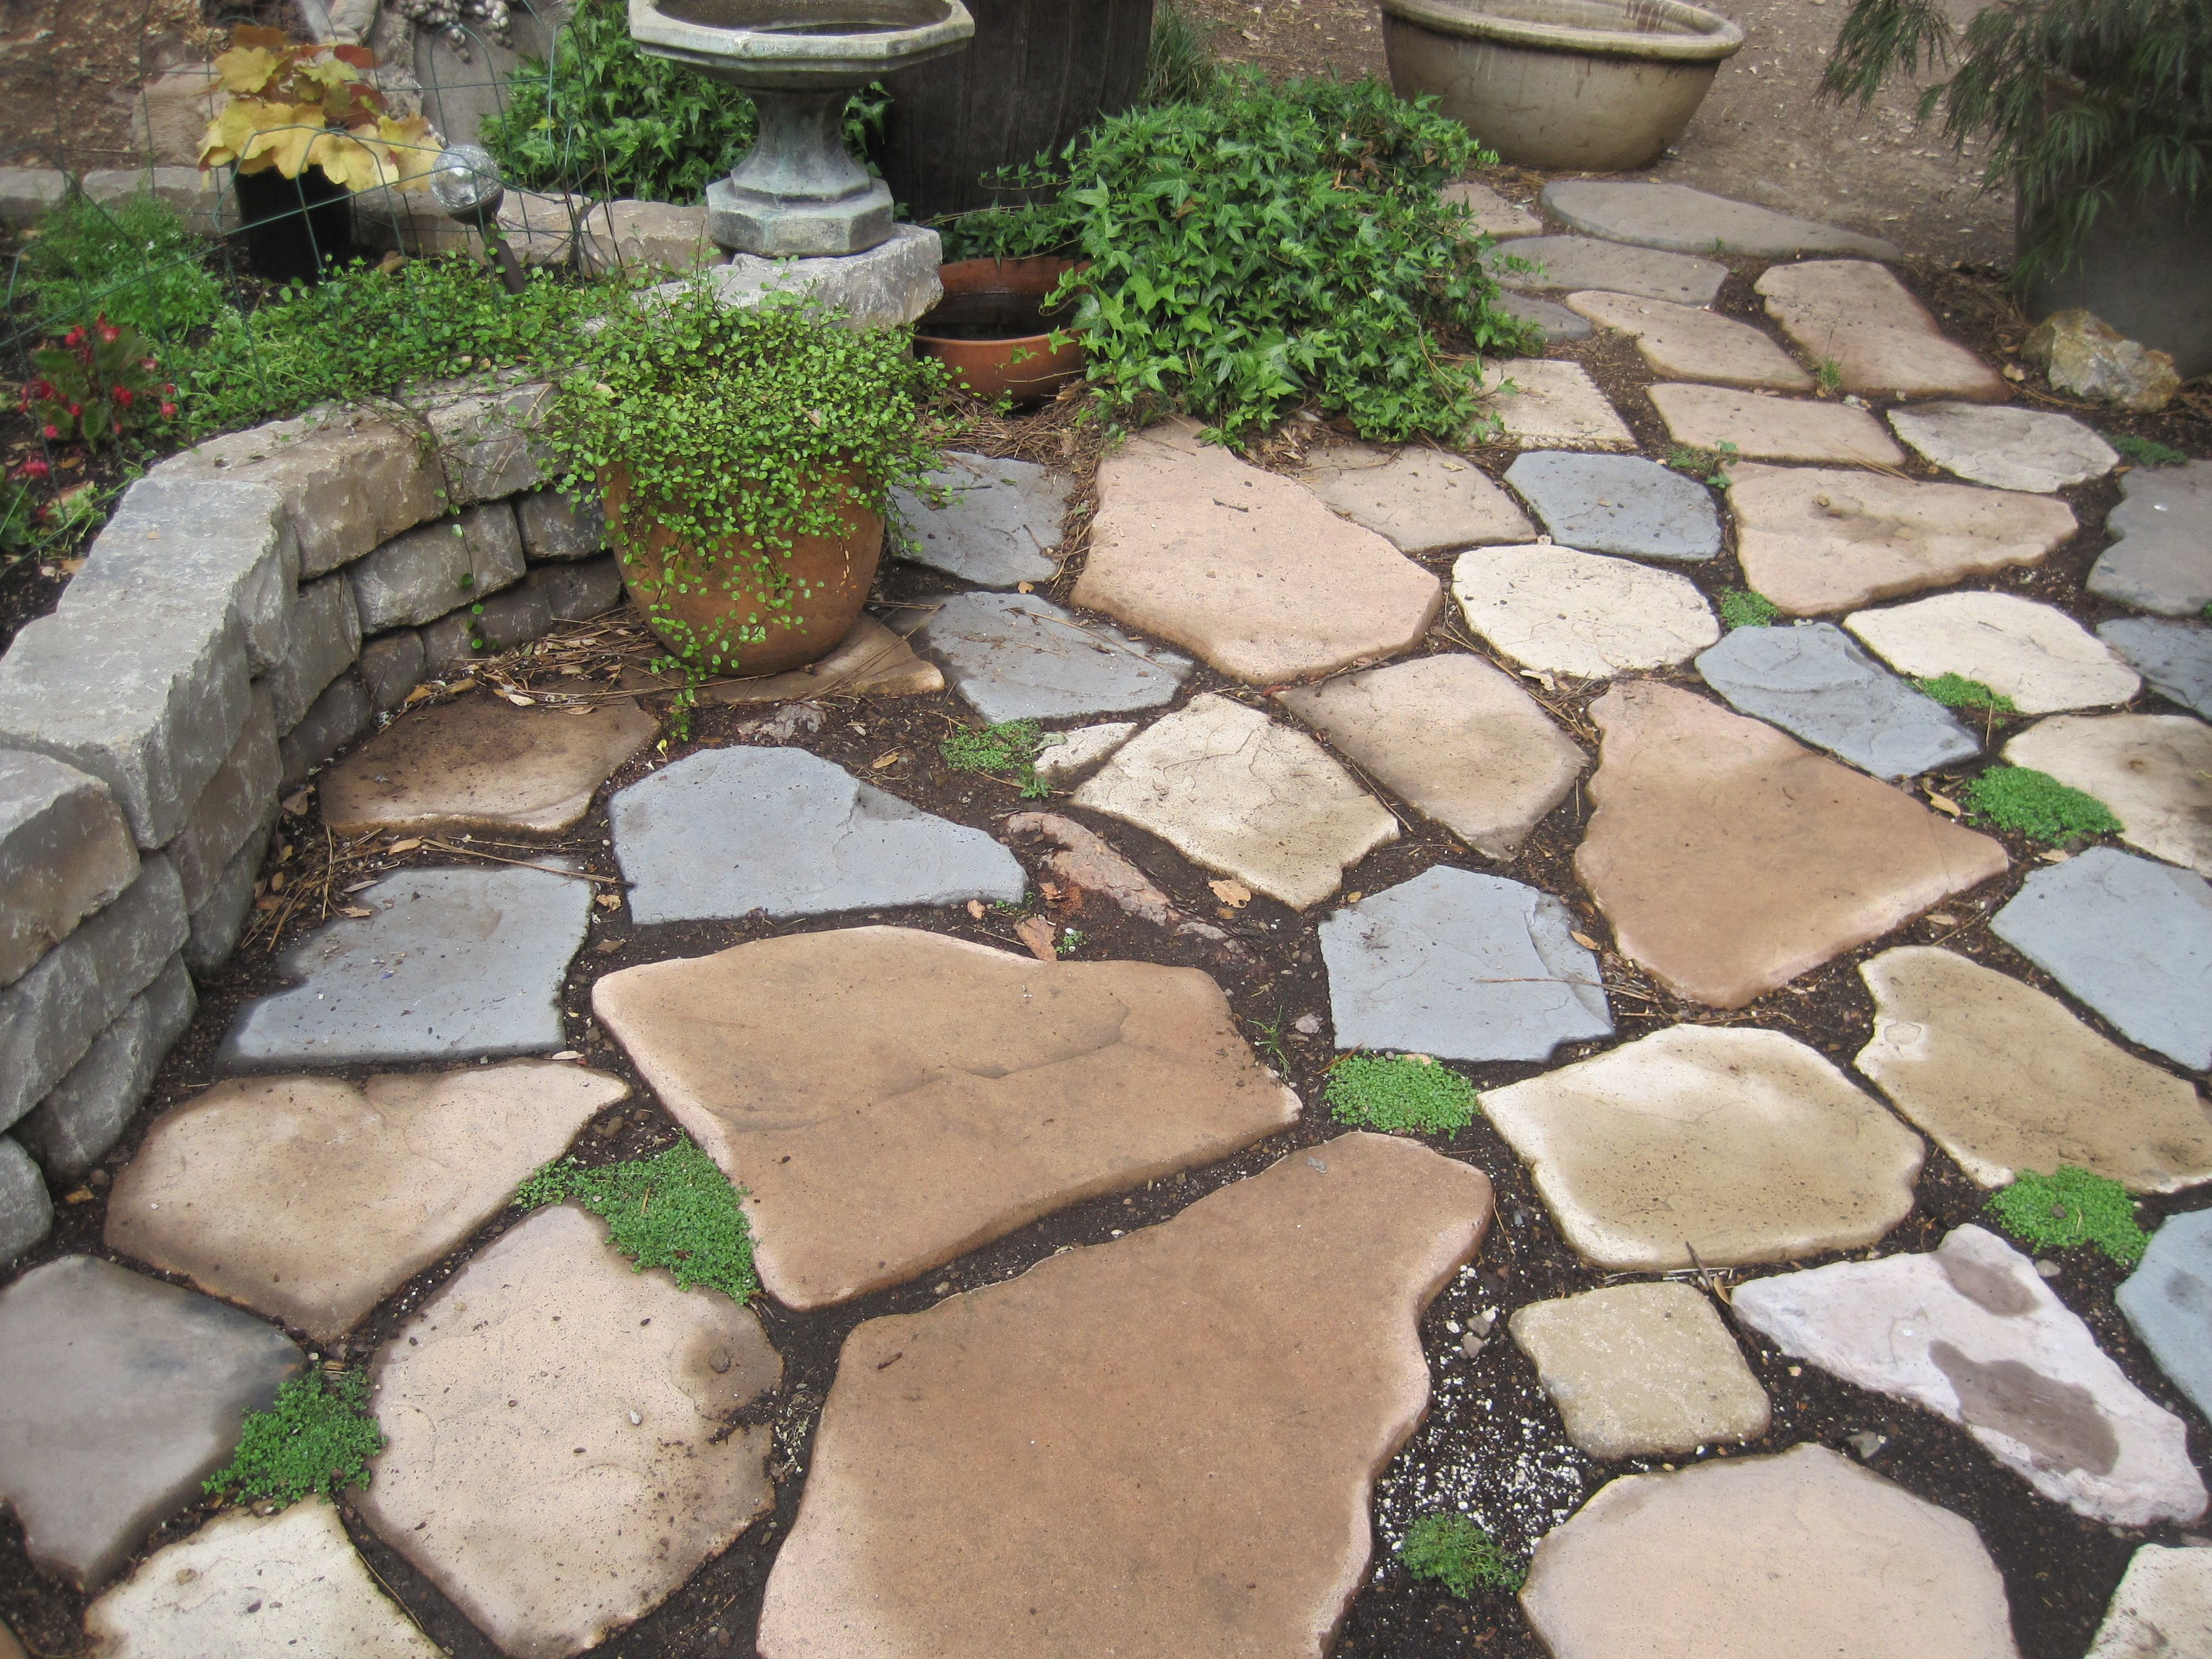 Home And Garden Amazing Florid Paver Stones Menards The Complete Illustrated Guide To Paver Landscaping Images River Rock Landscaping Landscaping With Rocks